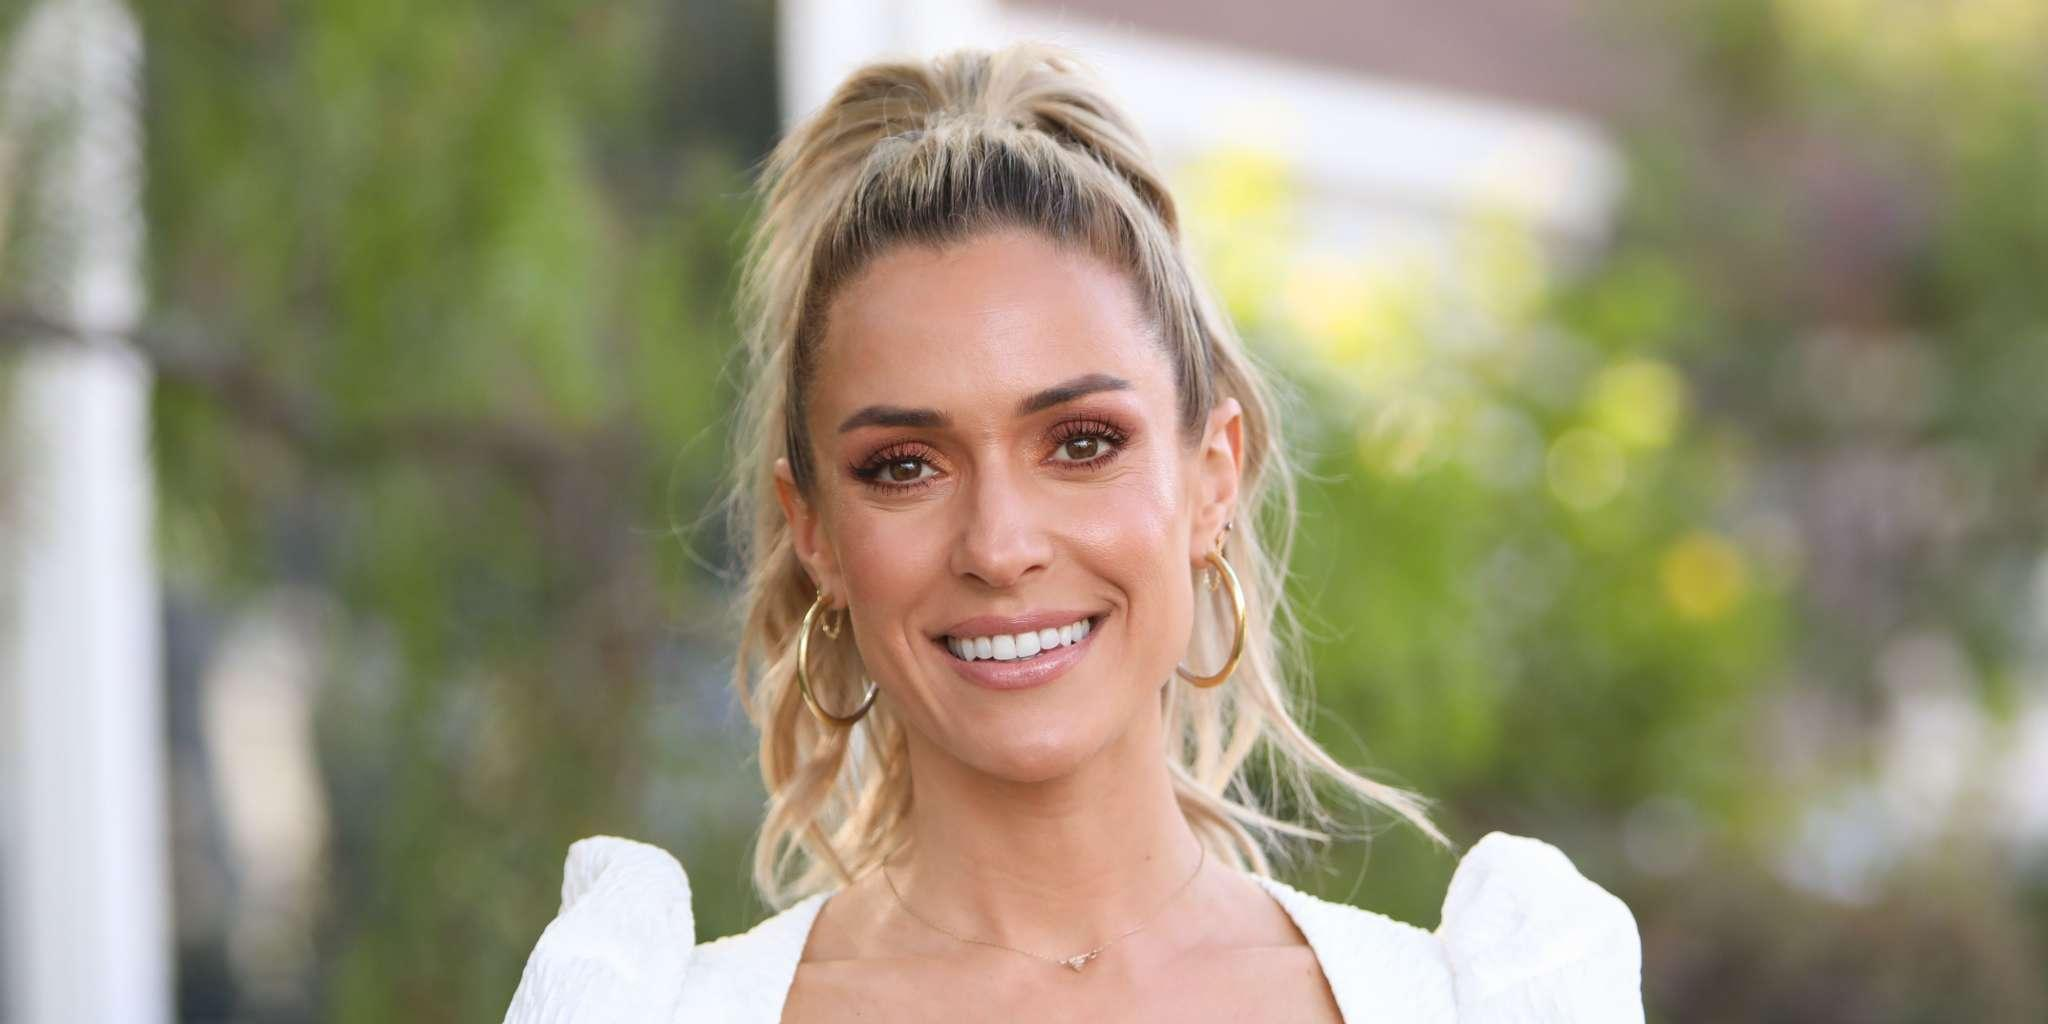 Kristin Cavallari Criticized For Not Self-Isolating After She Posts Hot Beach Pic!